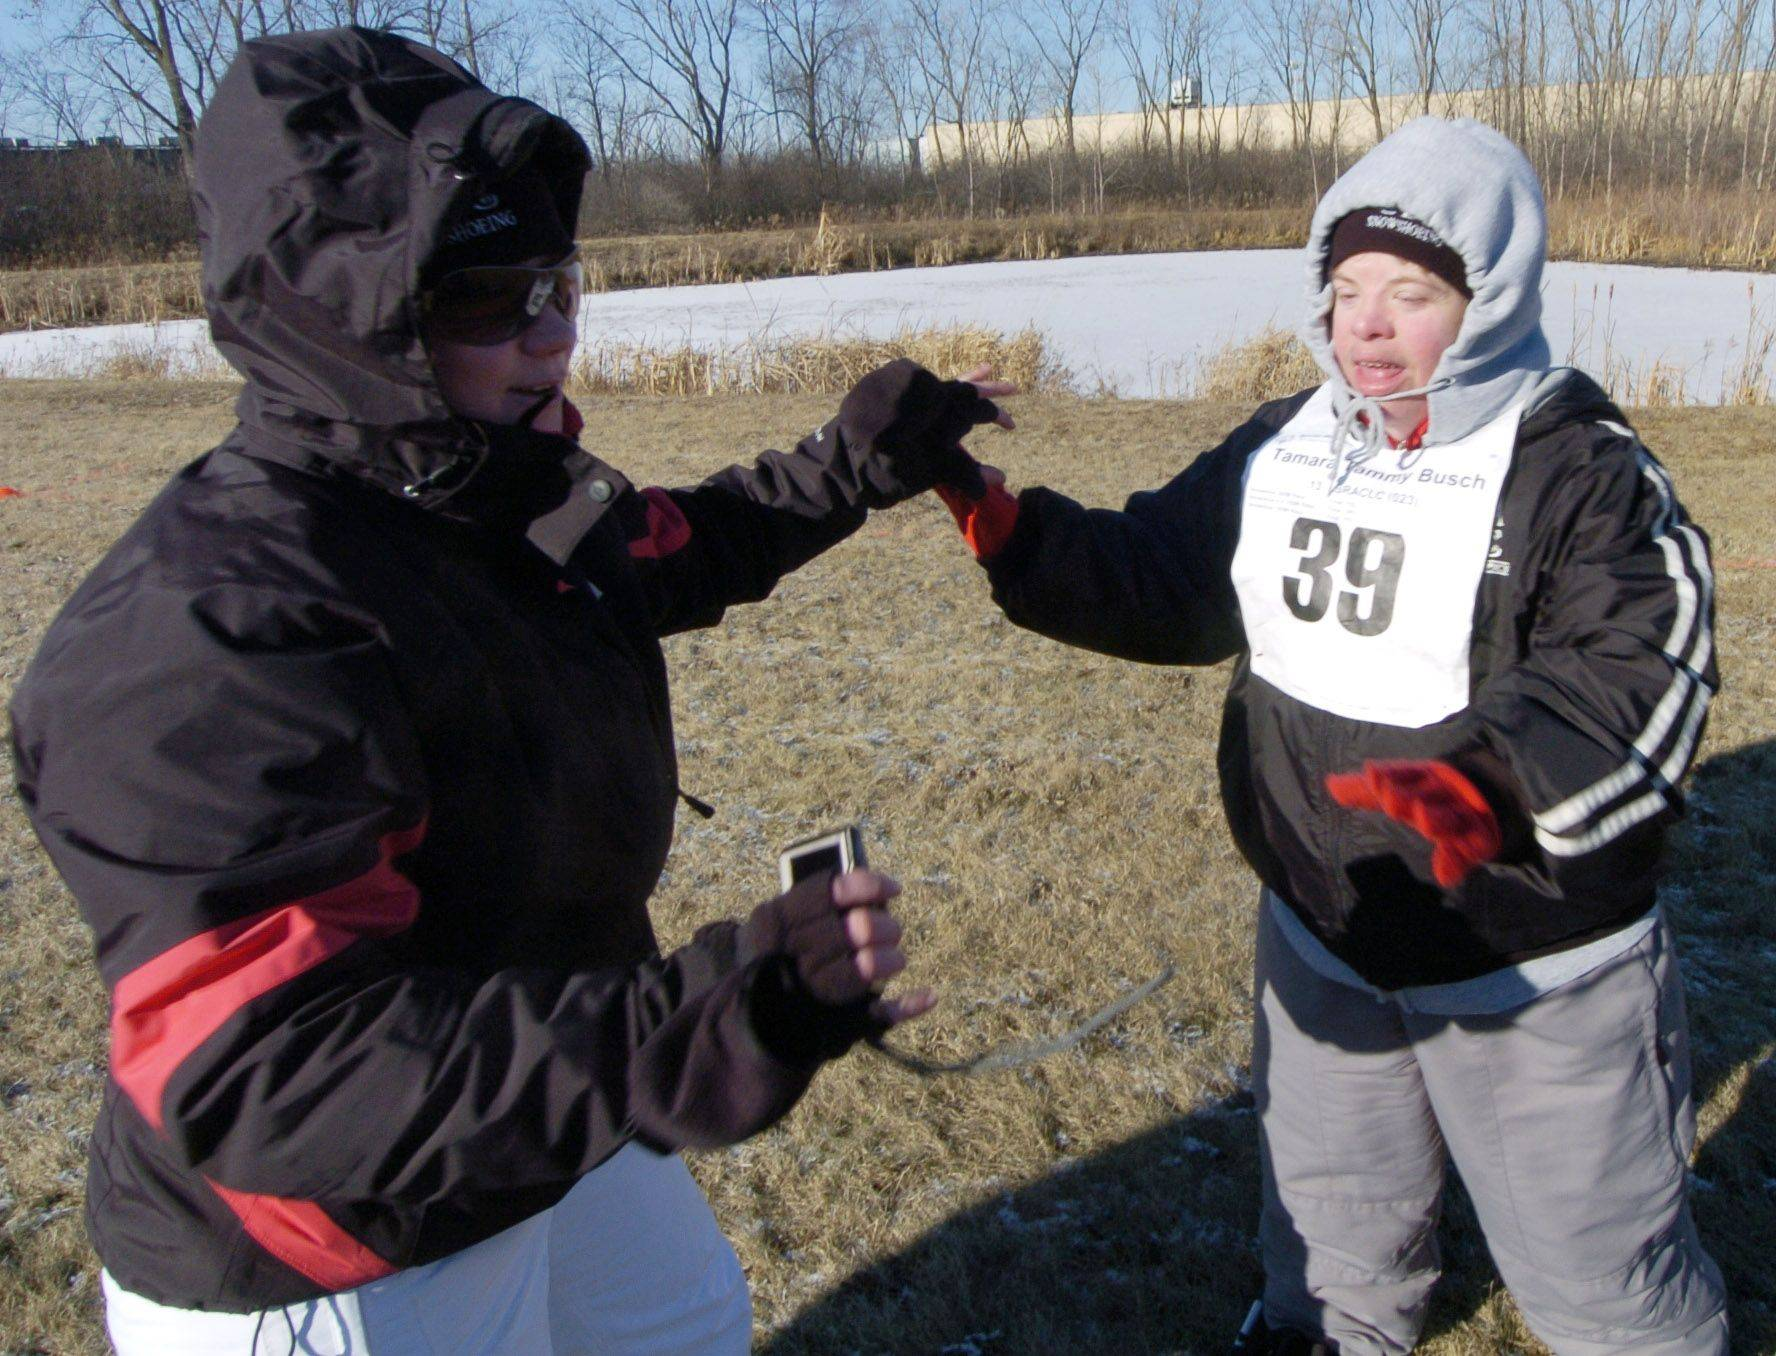 Tammy Busch, right of the Special Recreation Association of Central Lake County gets a high-five from coach Kelly Weber during Saturday's Special Olympics snowshoeing event at Lambs Farm.